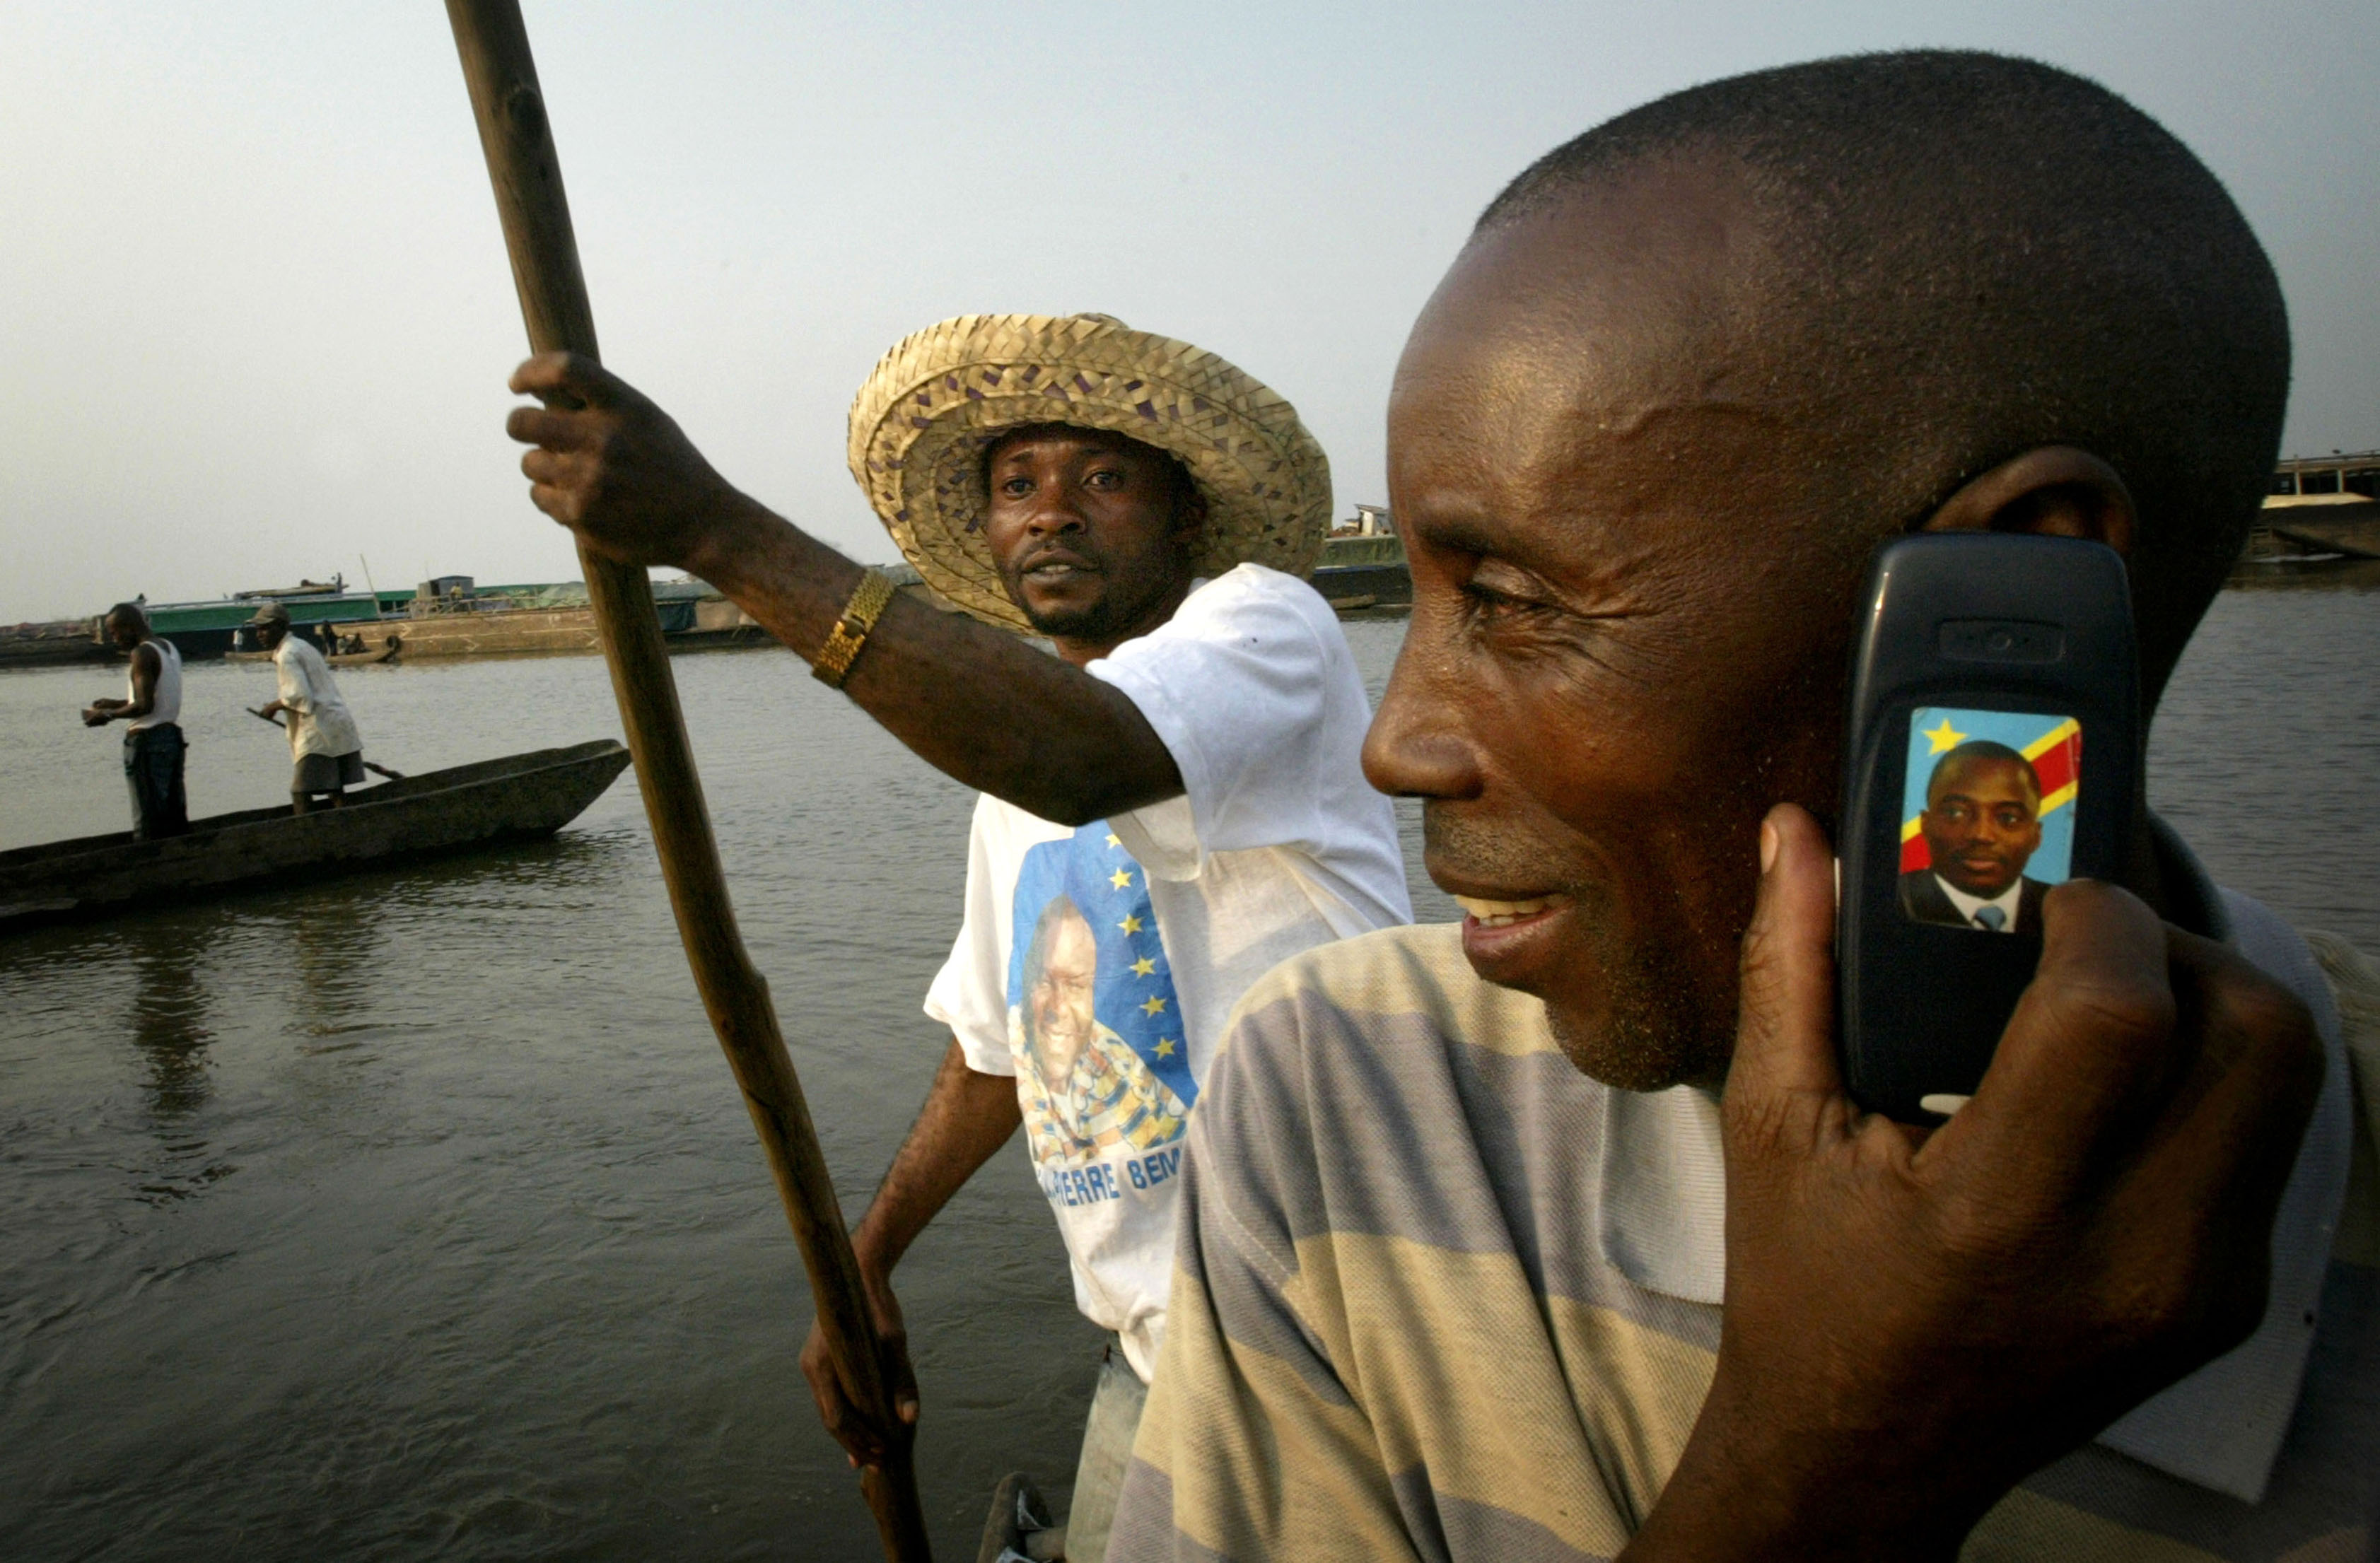 A man uses a mobile phone bearing the likeness of [President Joseph Kabila], while the oarsman wears a T-shirt showing opposition candidate [Jean-Pierre Bemba], on the Congo river near the capital Kinshasa, July 23, 2006. [Powerful Catholic leaders in Congo's capital urged voters on Sunday to boycott historic elections next week unless allegations of fraud were addressed, raising concerns over the first multi-party polls in 40 years.] - PBEAHUNKOER